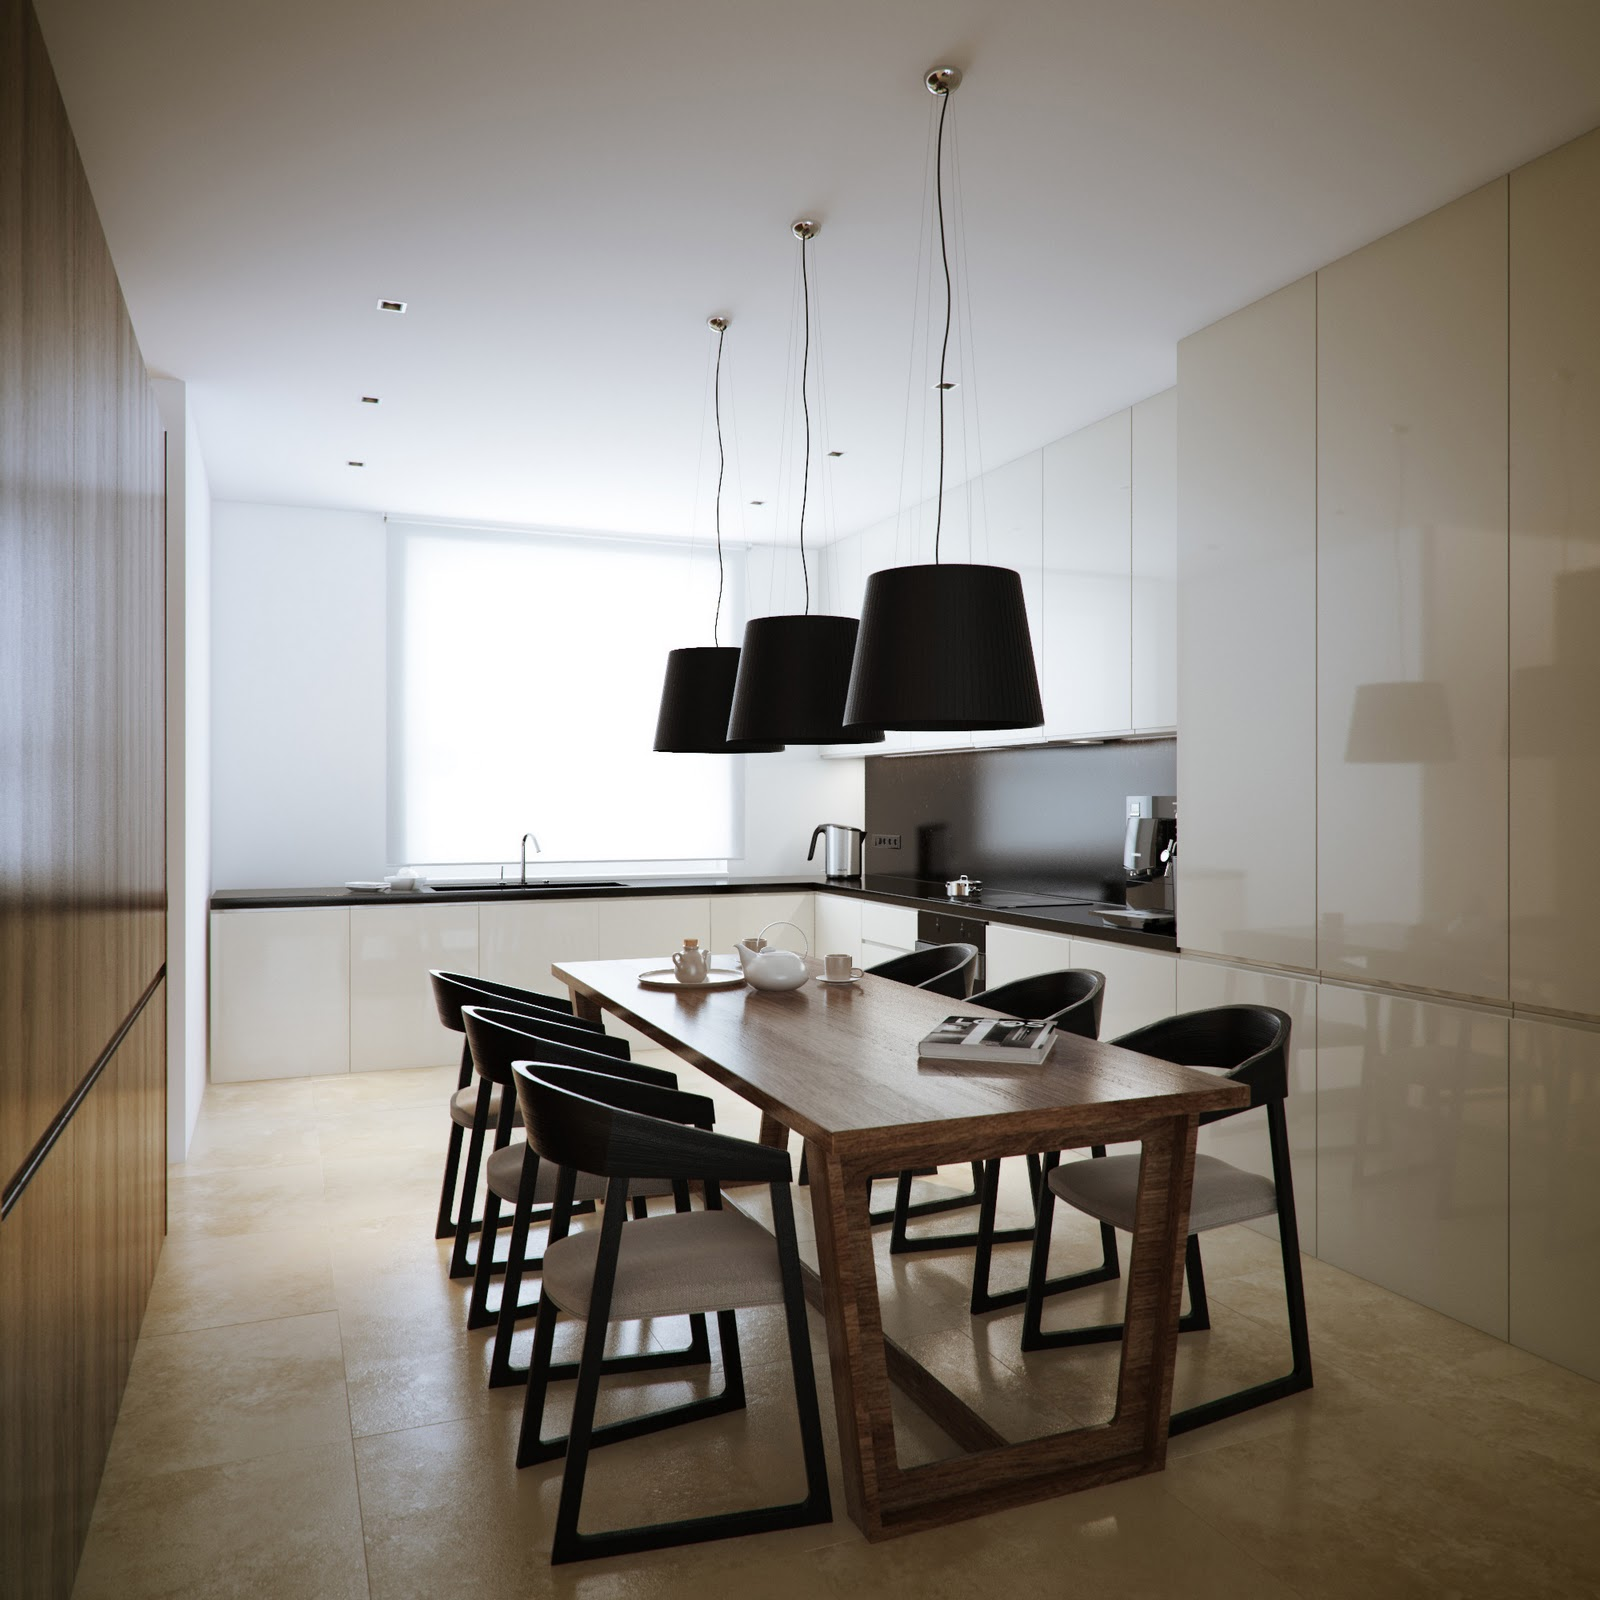 Modern minimalist black and white lofts Kitchen room furniture design